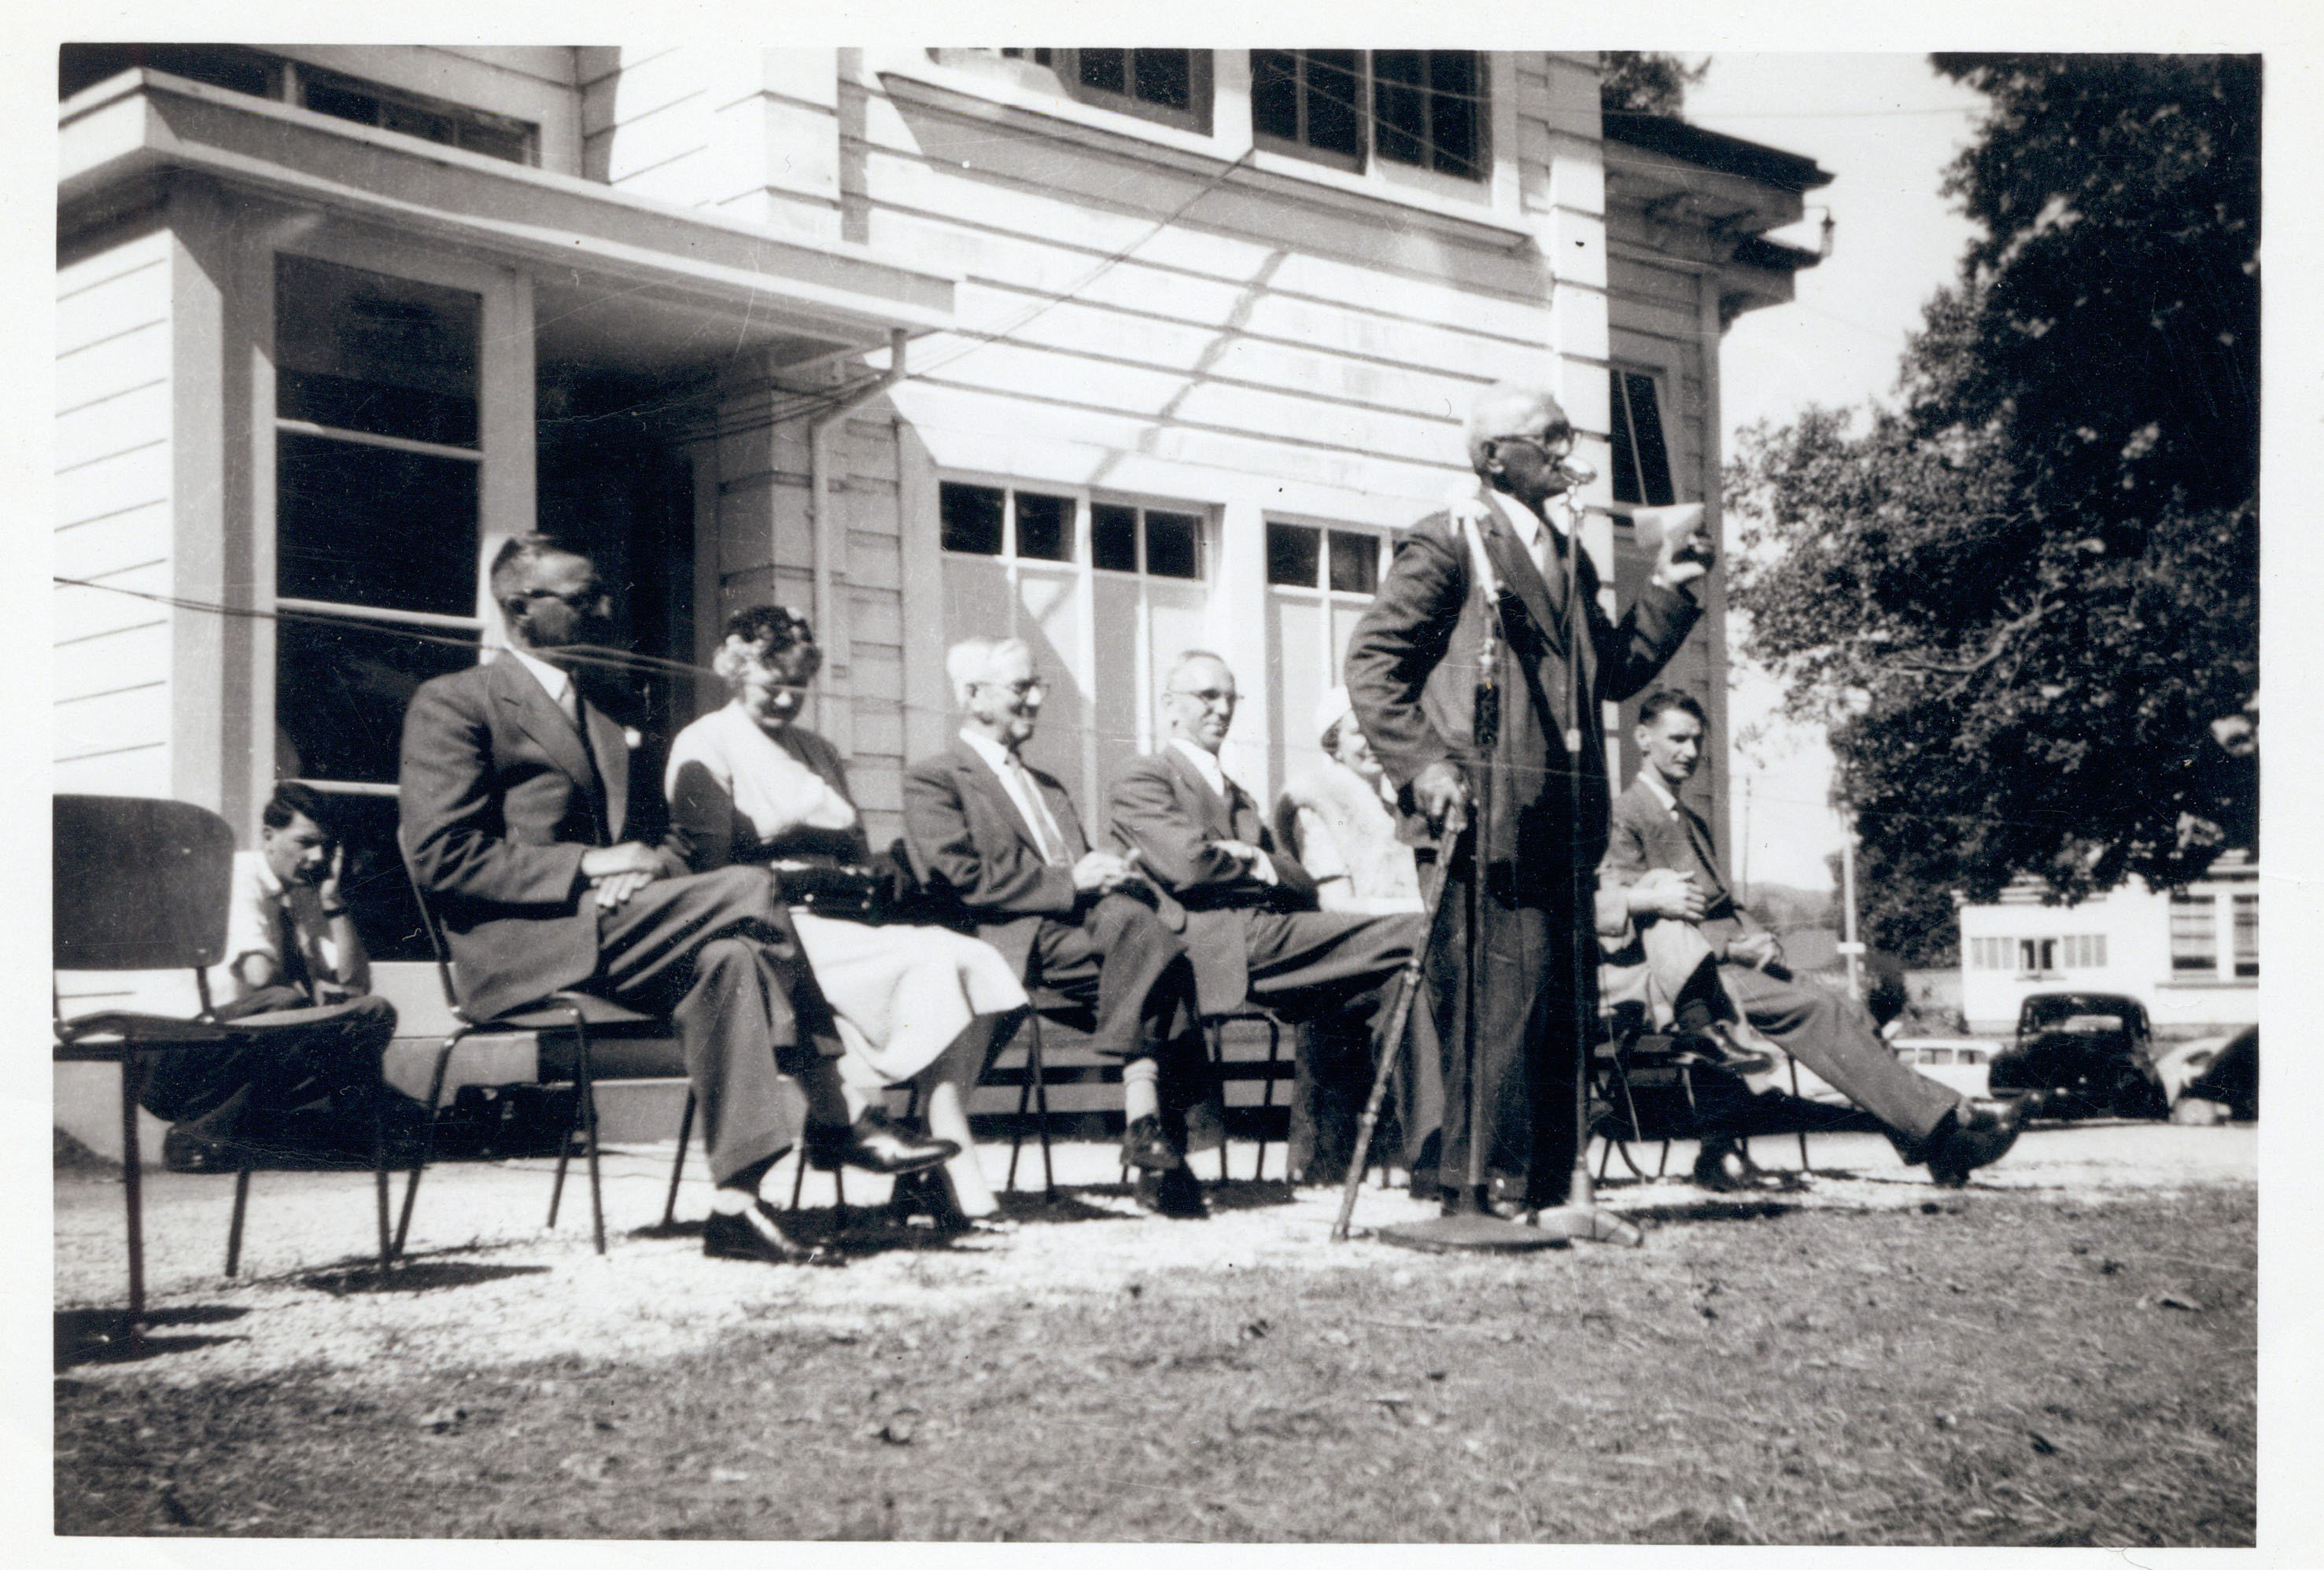 Dedication of the Māori Wing, 1958. 601-1-9